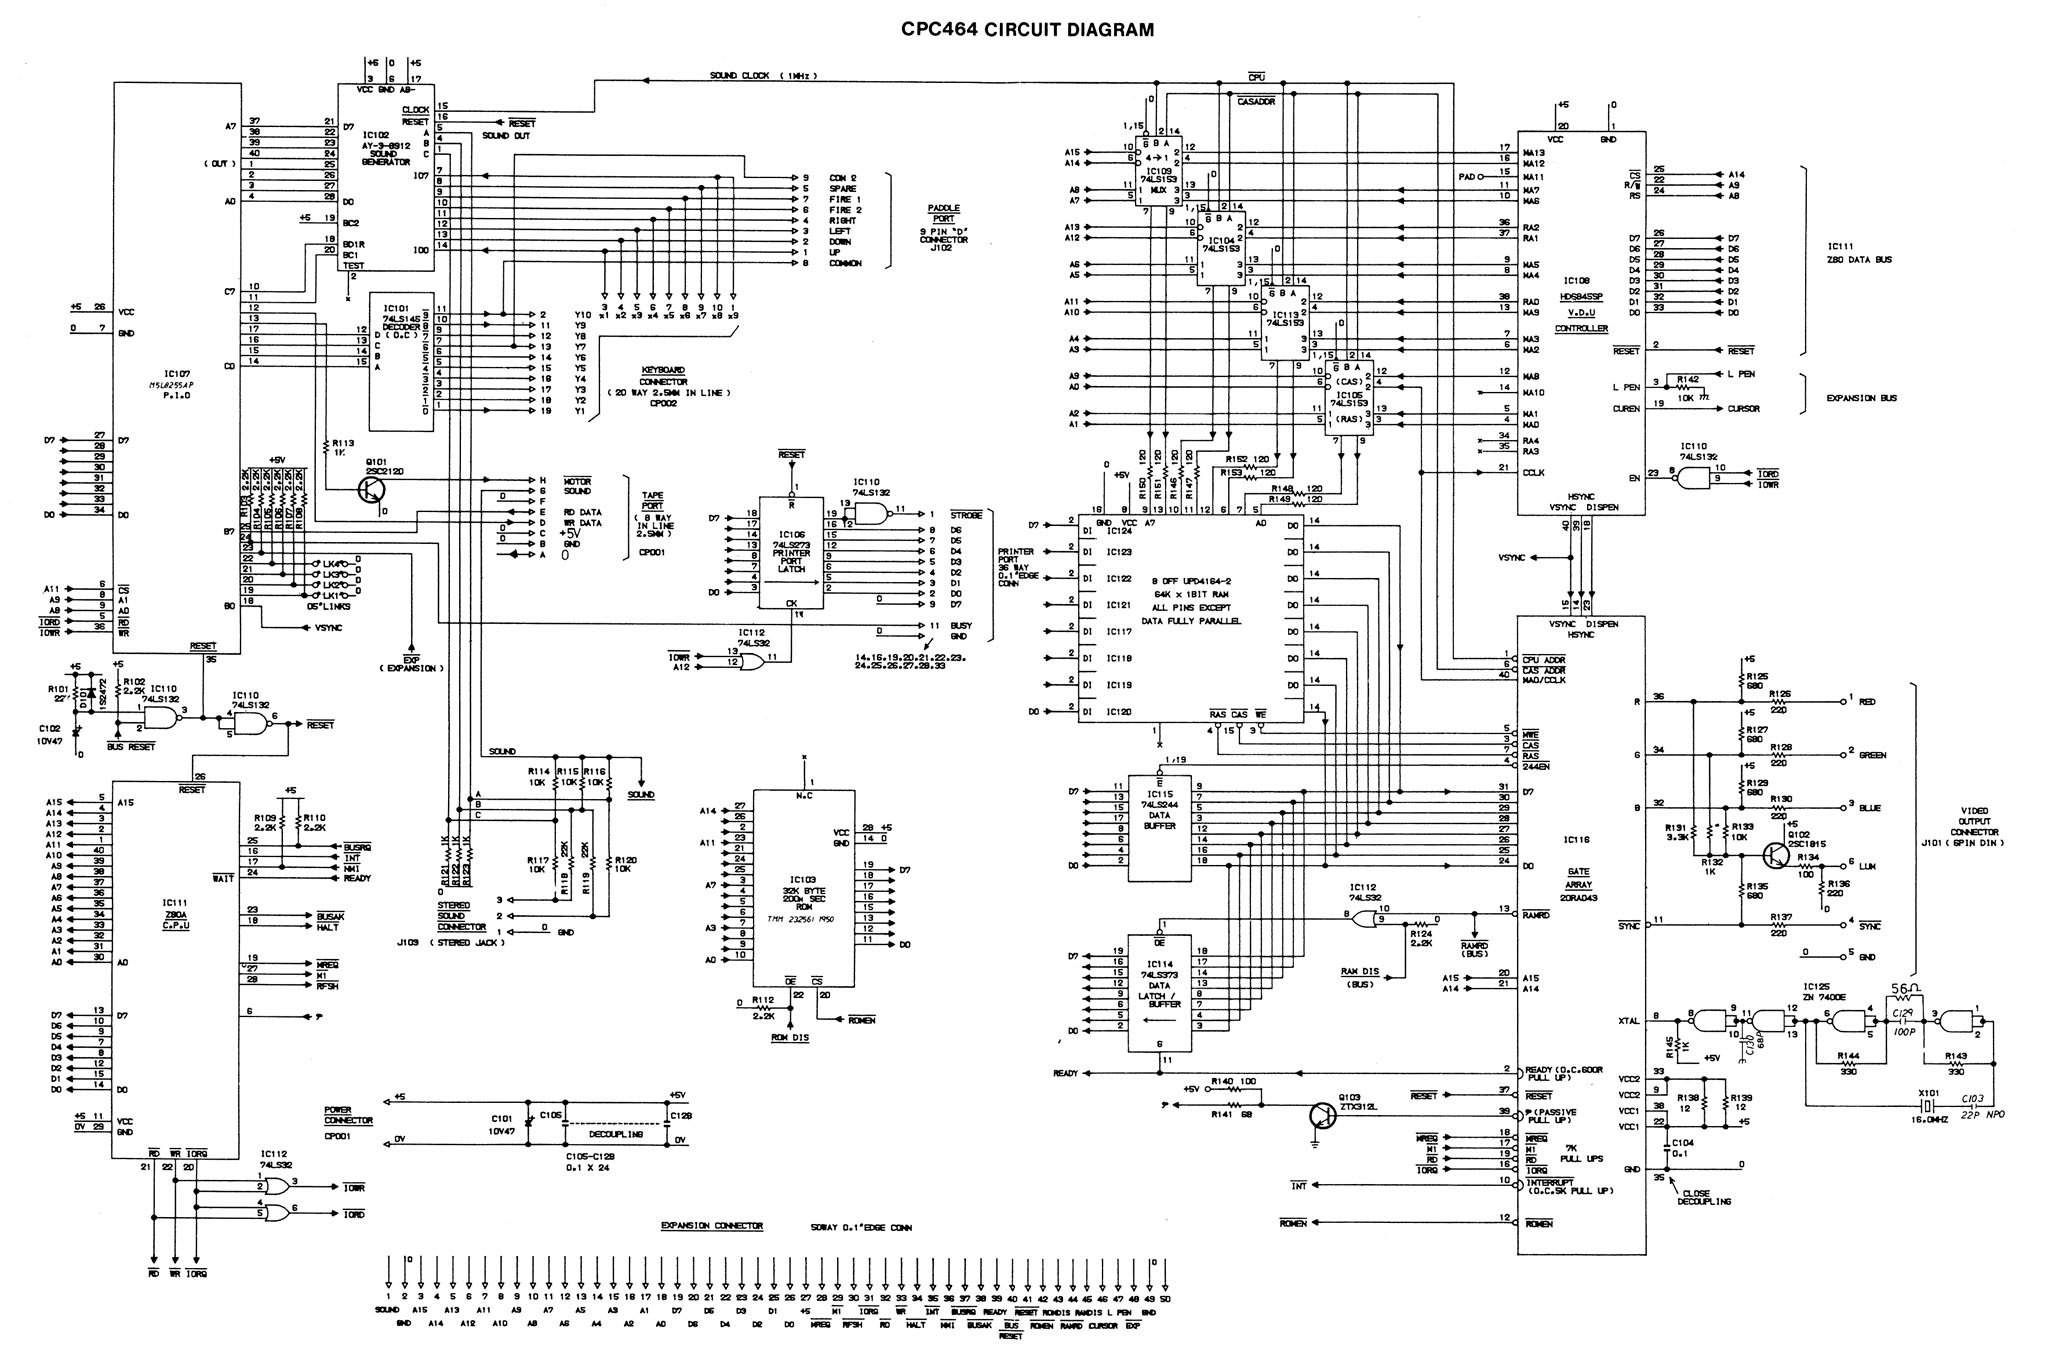 Asrock Wiring Diagram Browse Data Electrical Ladder As Well Function Block Online Schematic Circuit